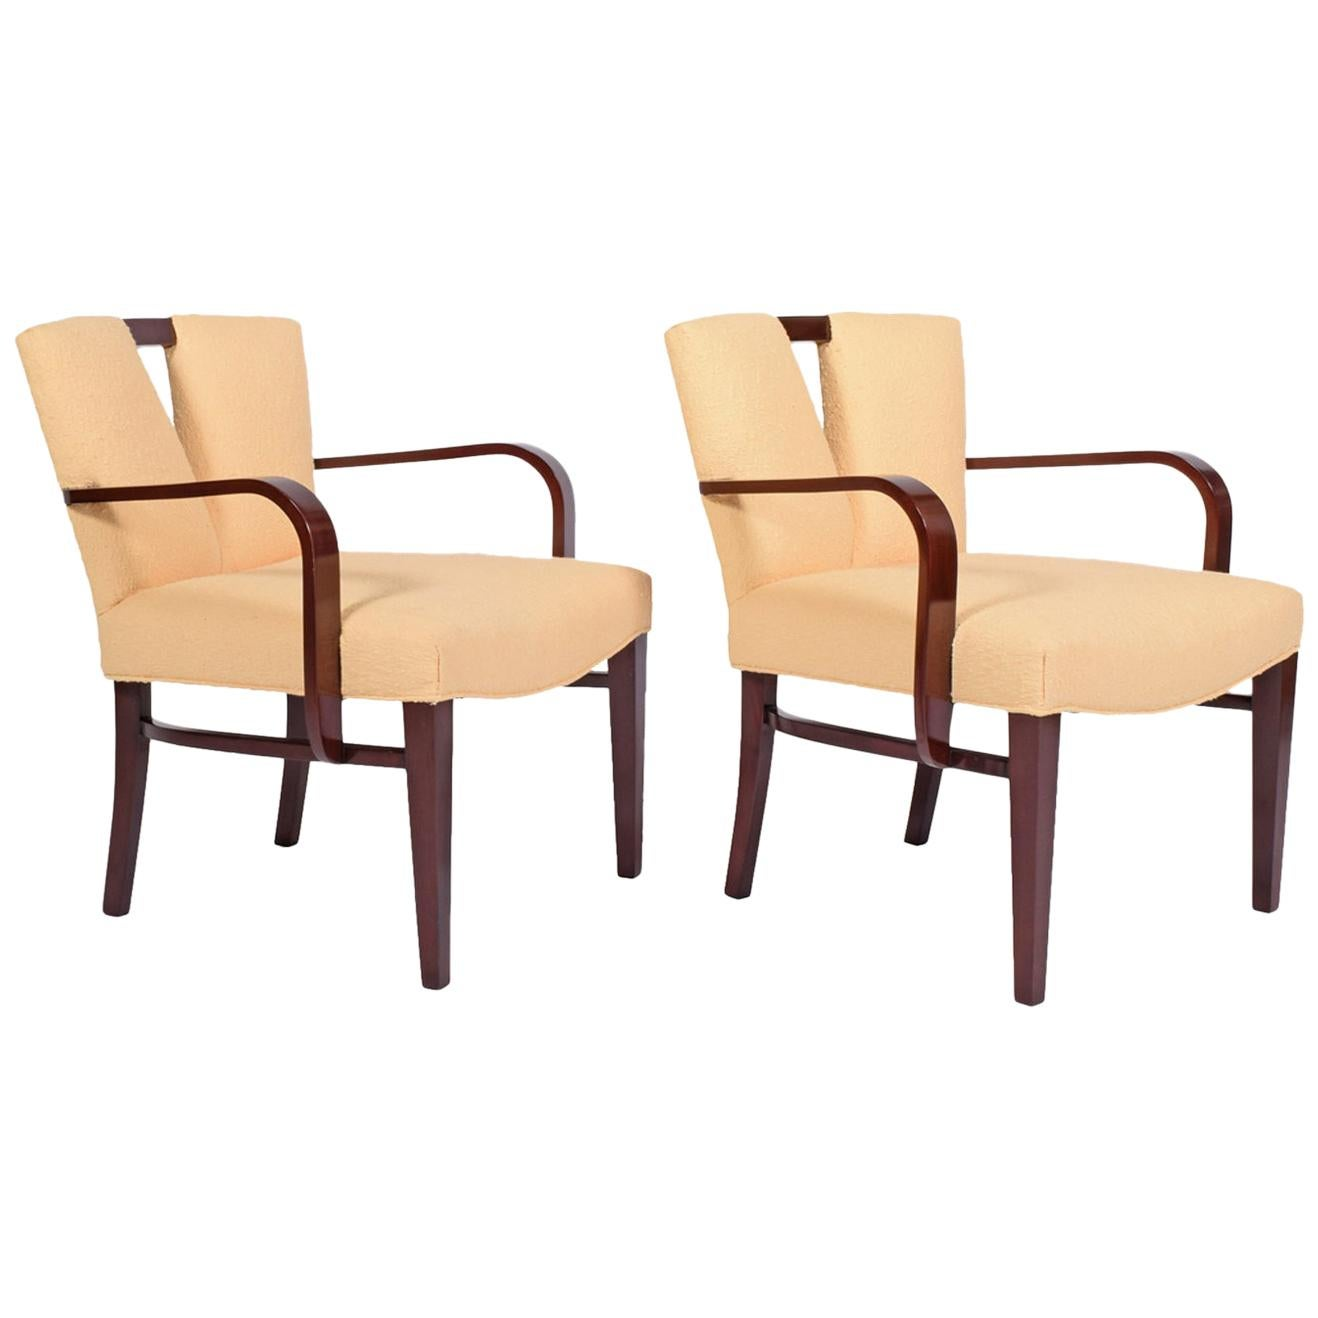 Pair of Armchairs by Paul Frankl for Johnson Furniture